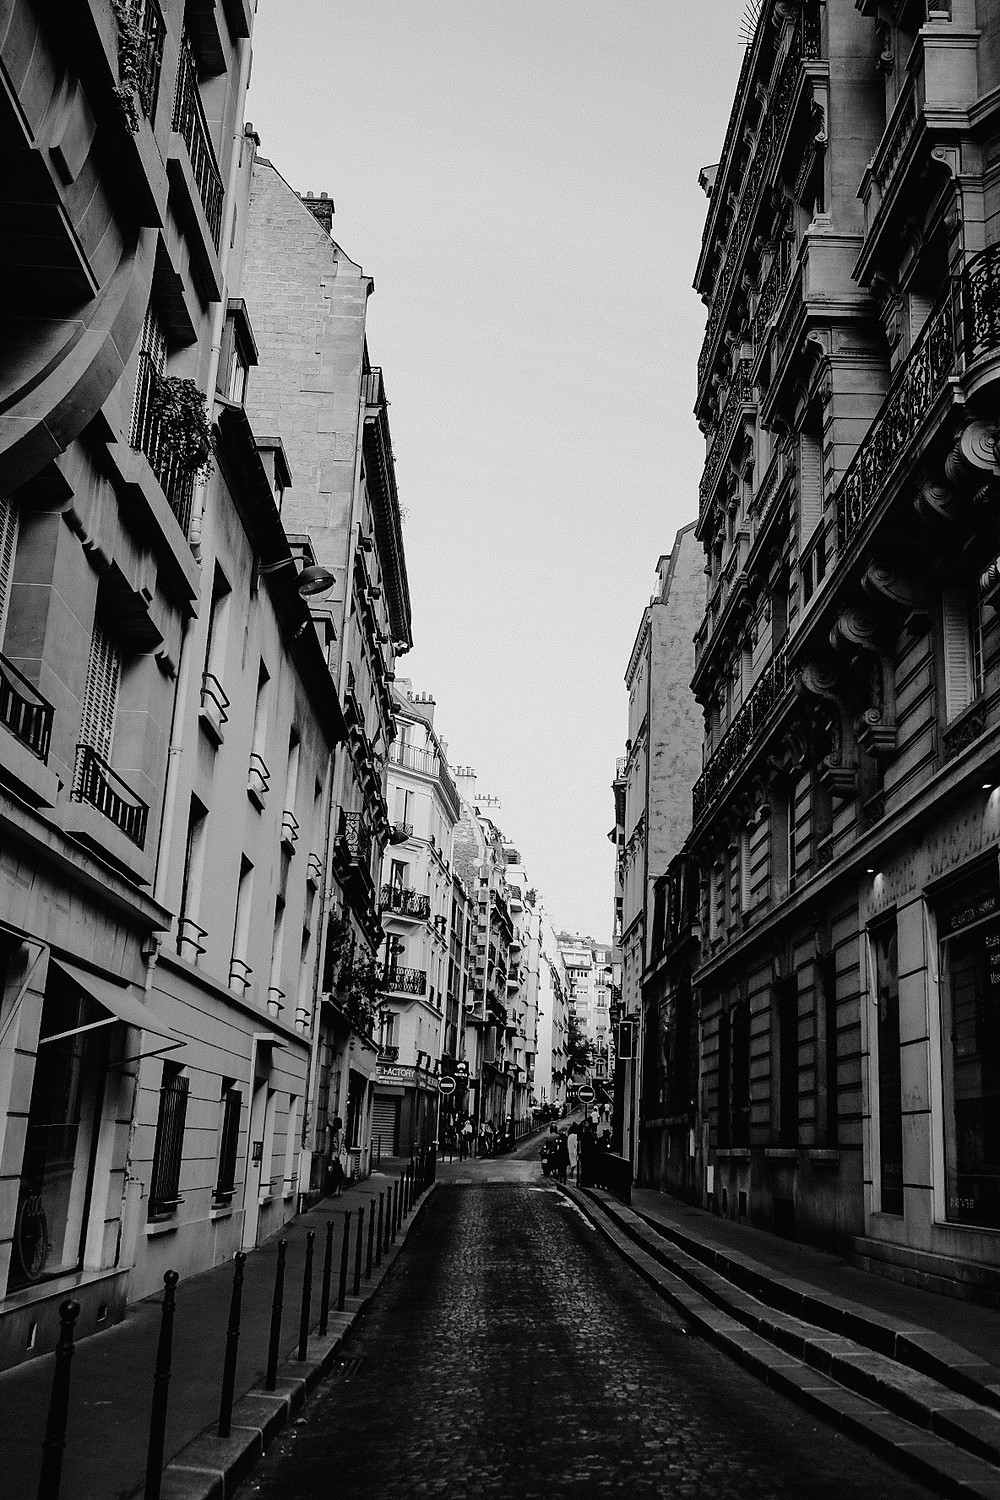 parisan side street